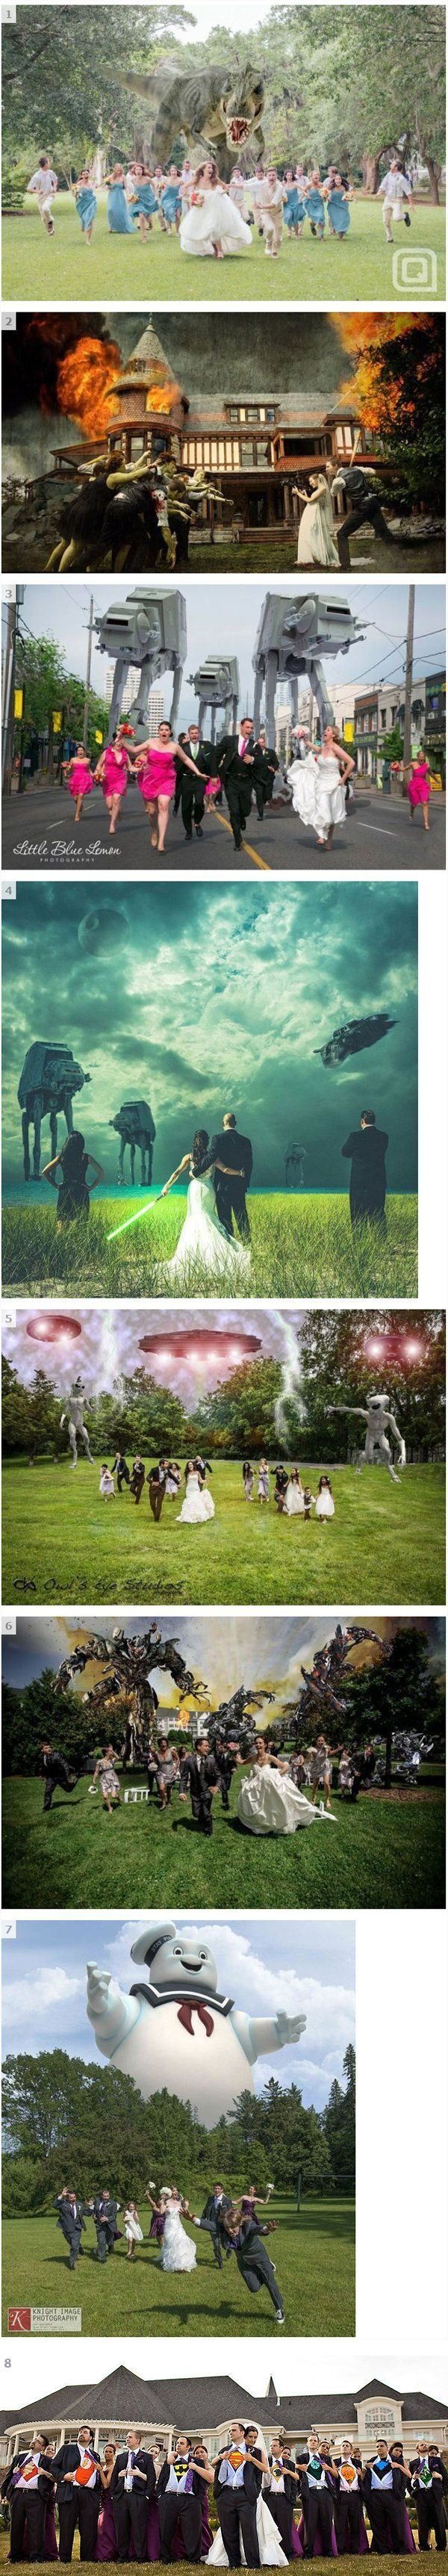 Creative wedding pictures - Win Pictures | Webfail - Fail Pictures and Fail Videos